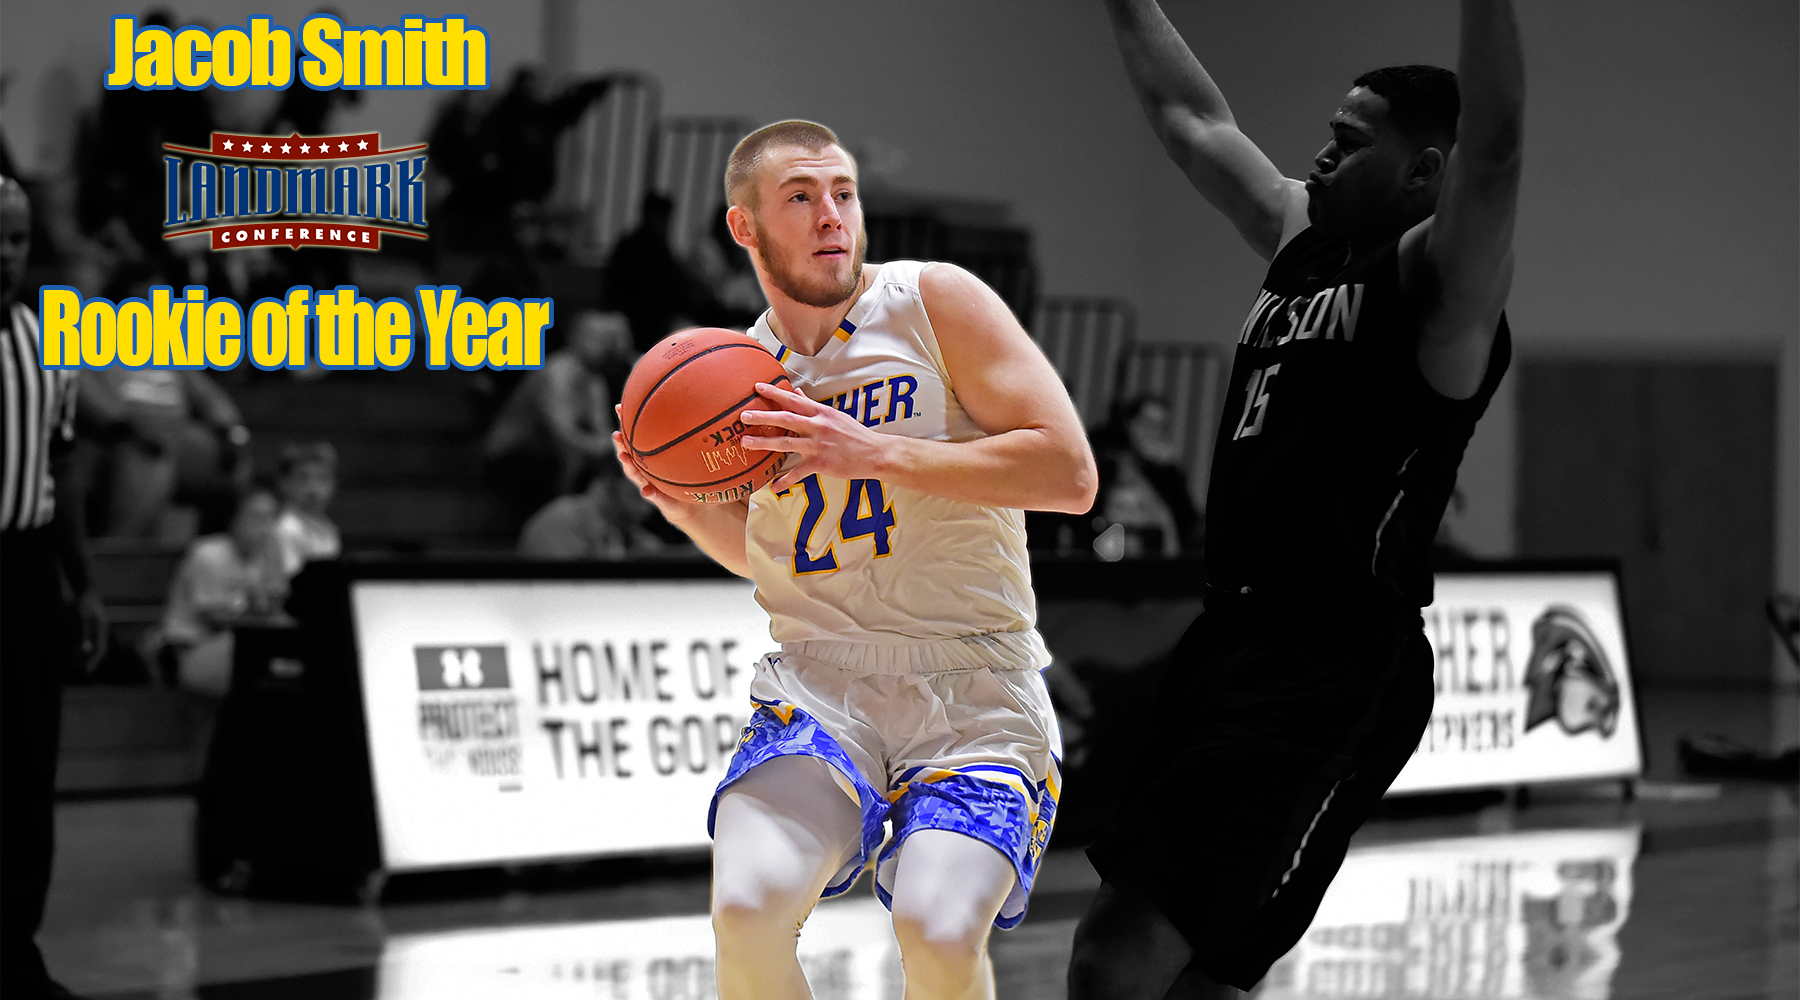 Jacob Smith Named Landmark Conference's Rookie of the Year for Men's Basketball